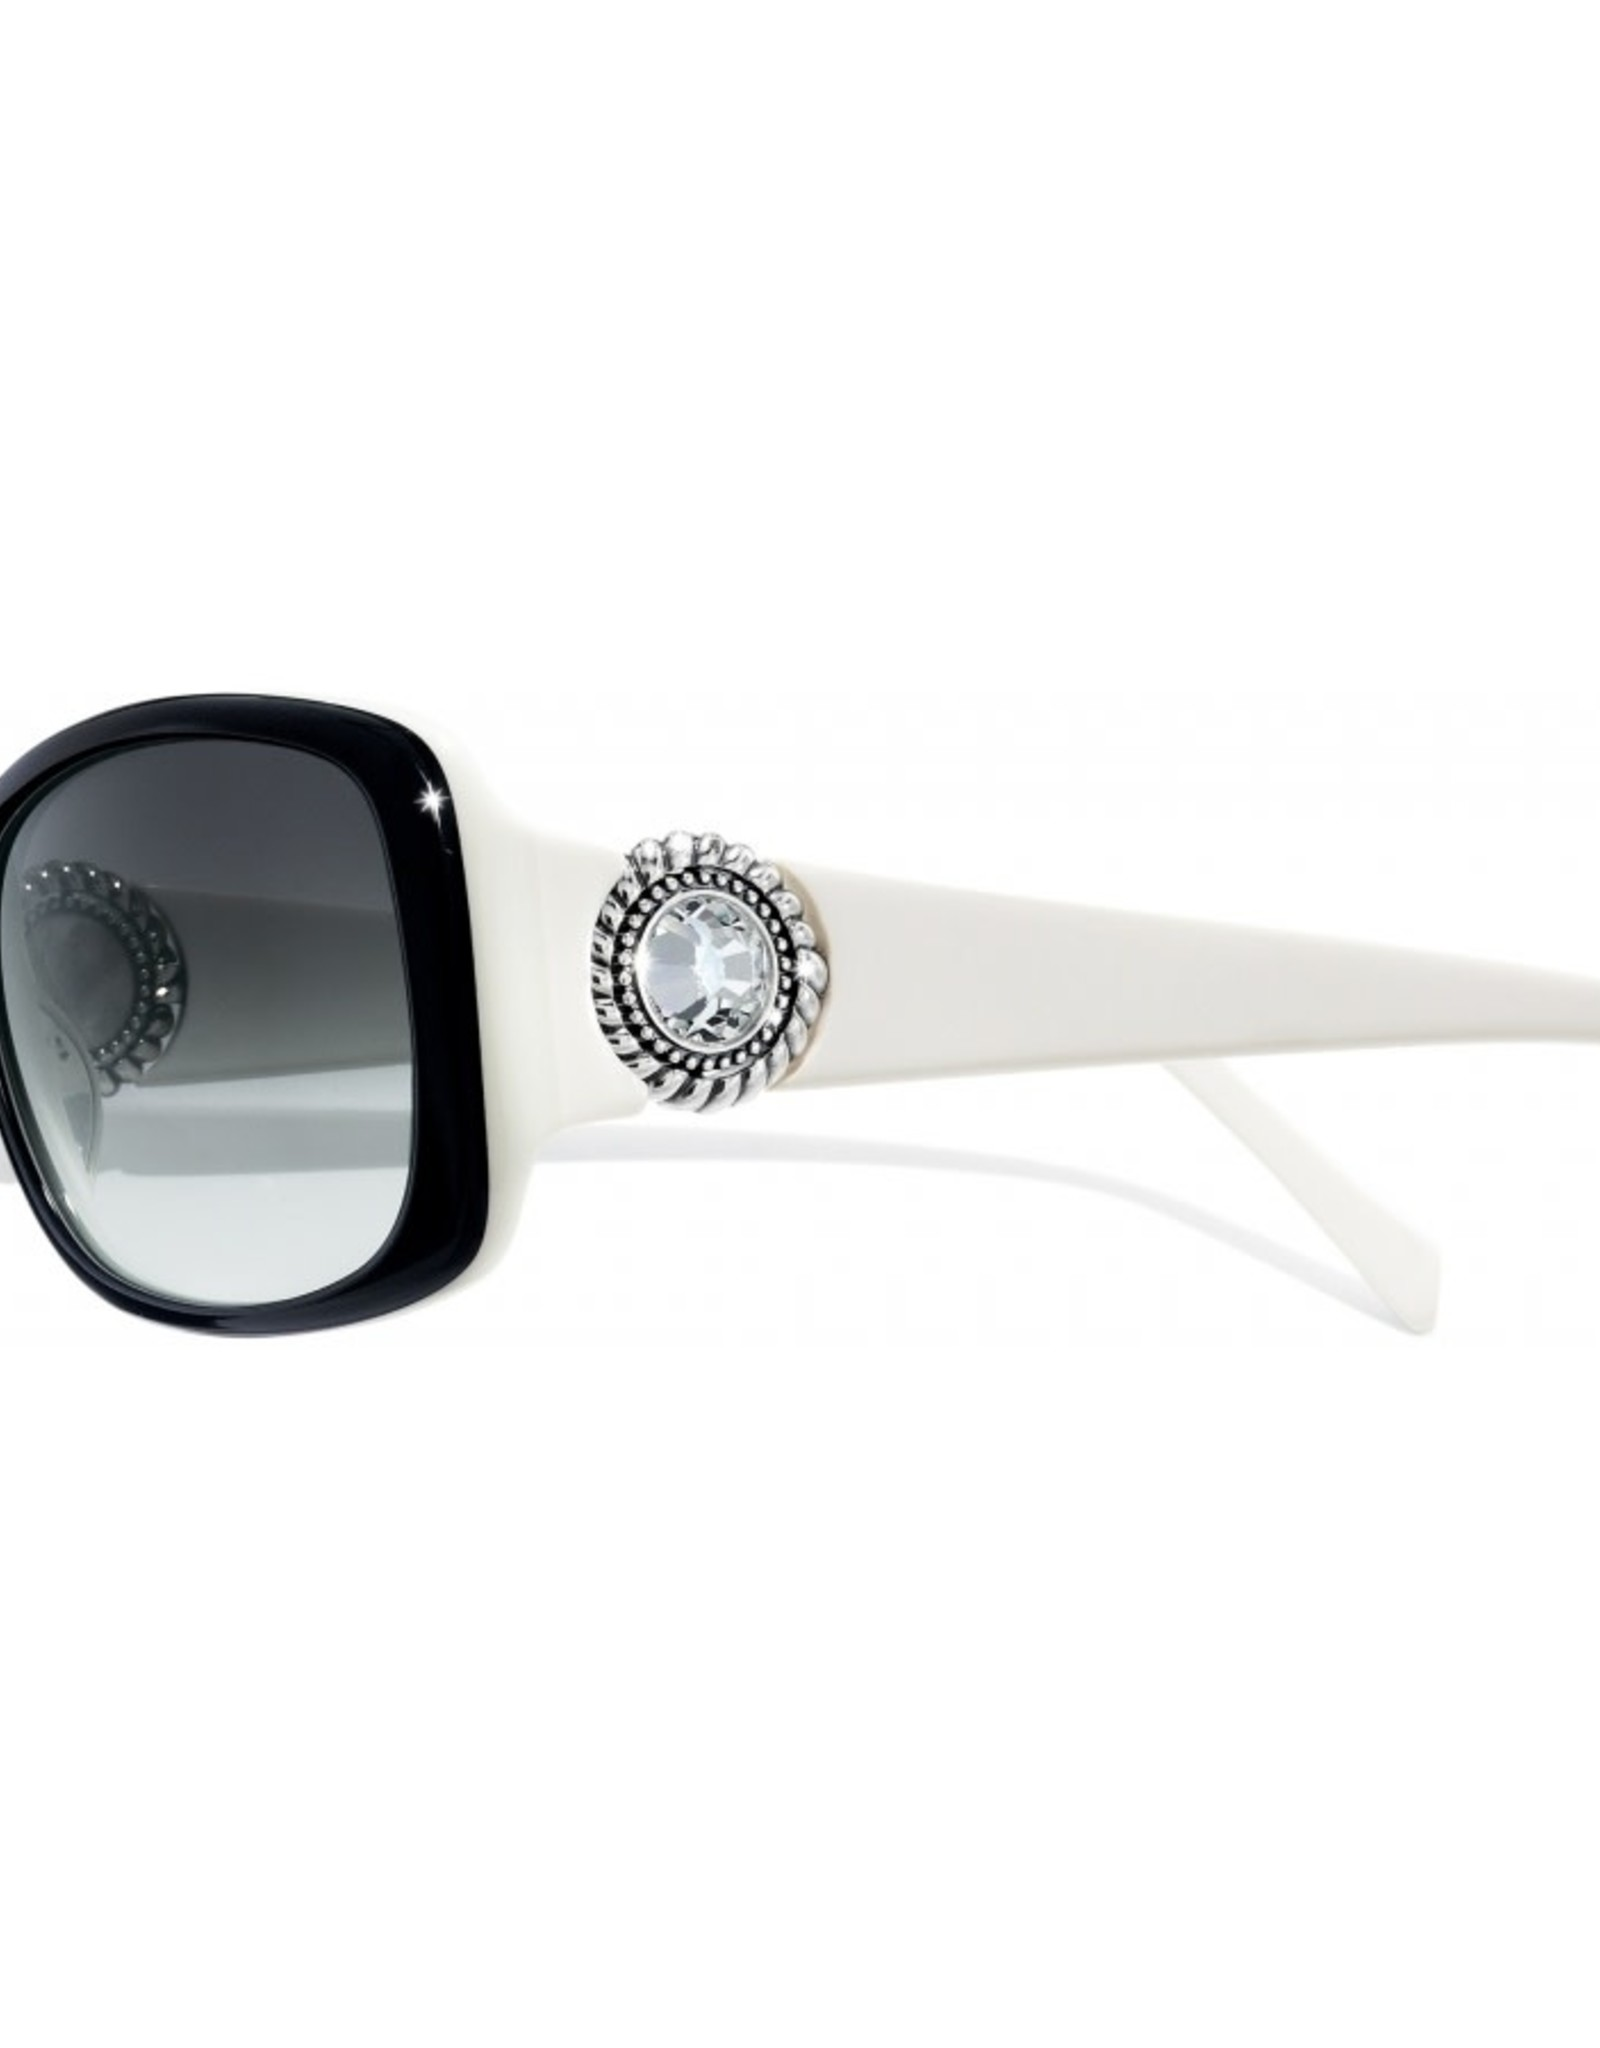 Brighton Brighton Sunglasses-Twinkle-Black/White